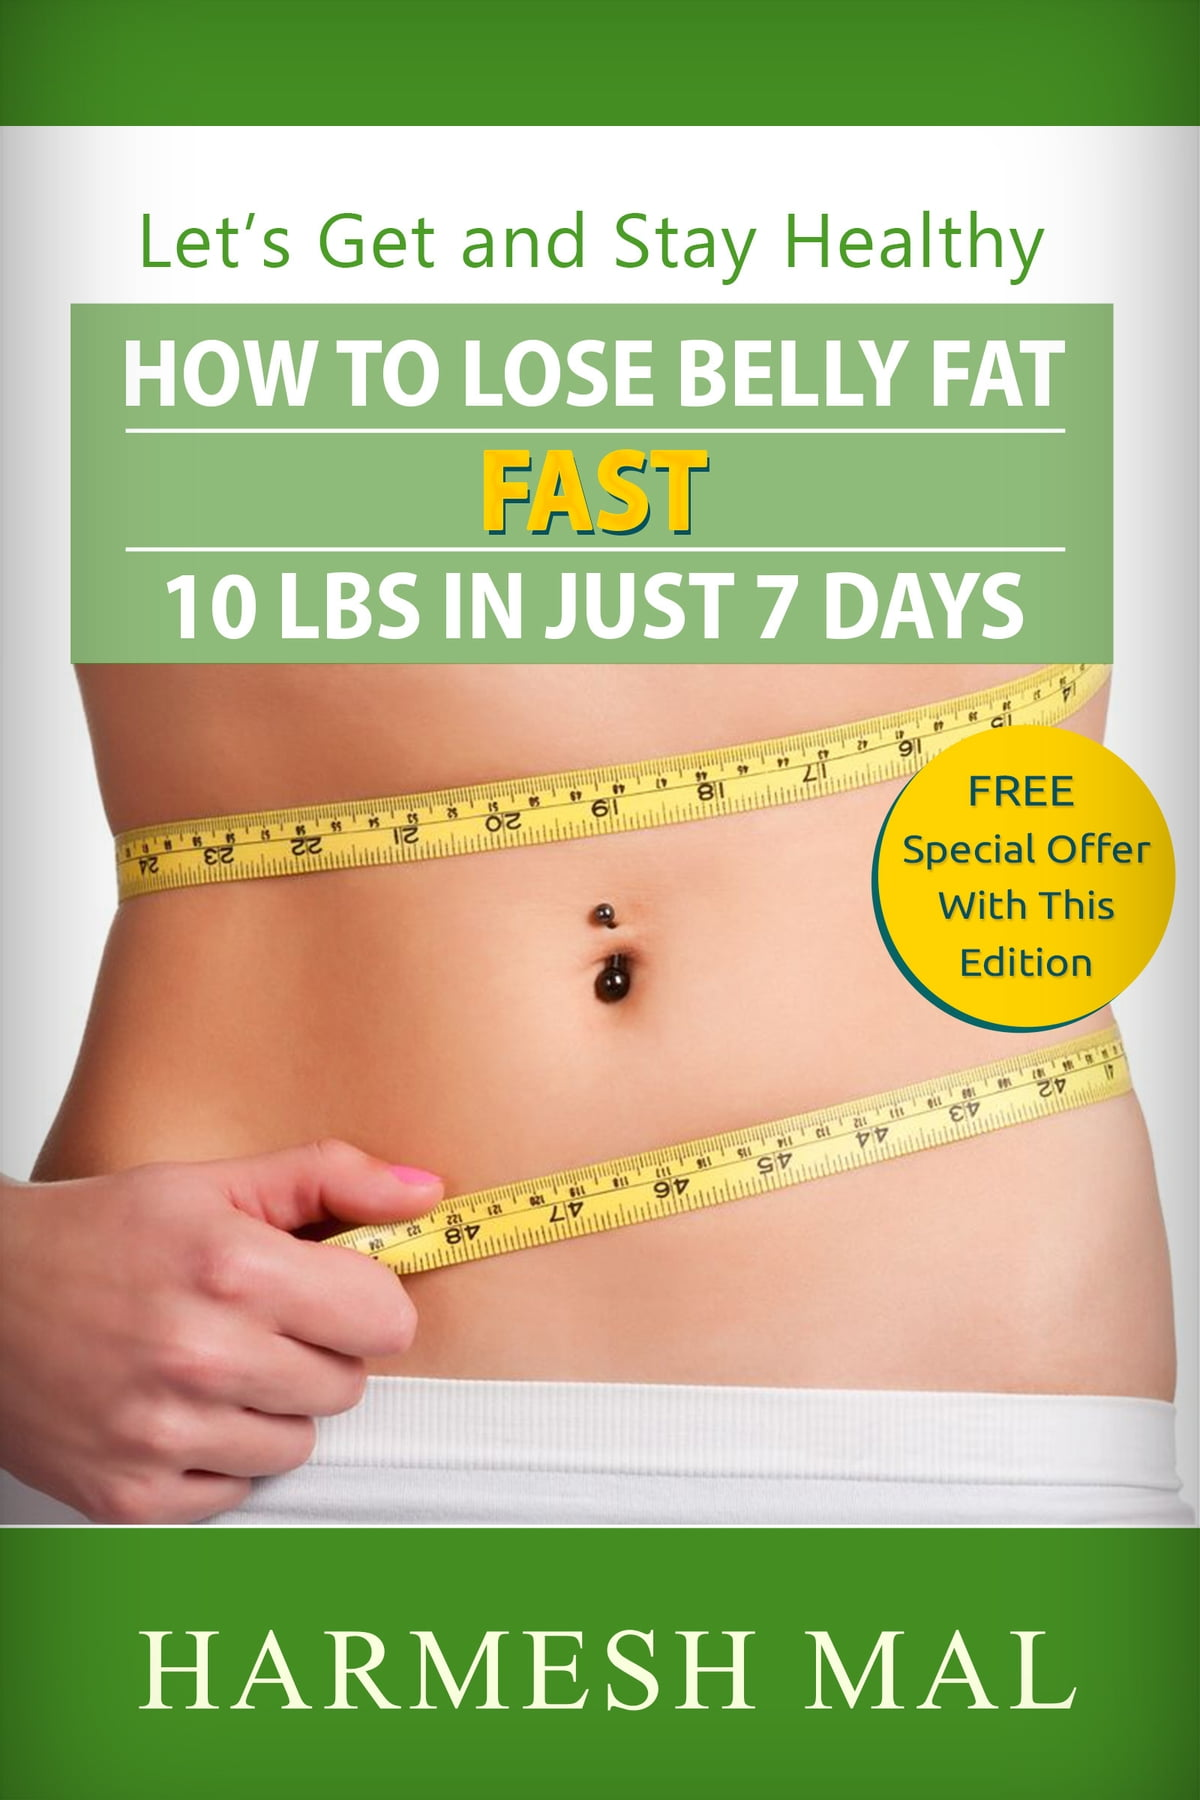 How we can lose tummy fat